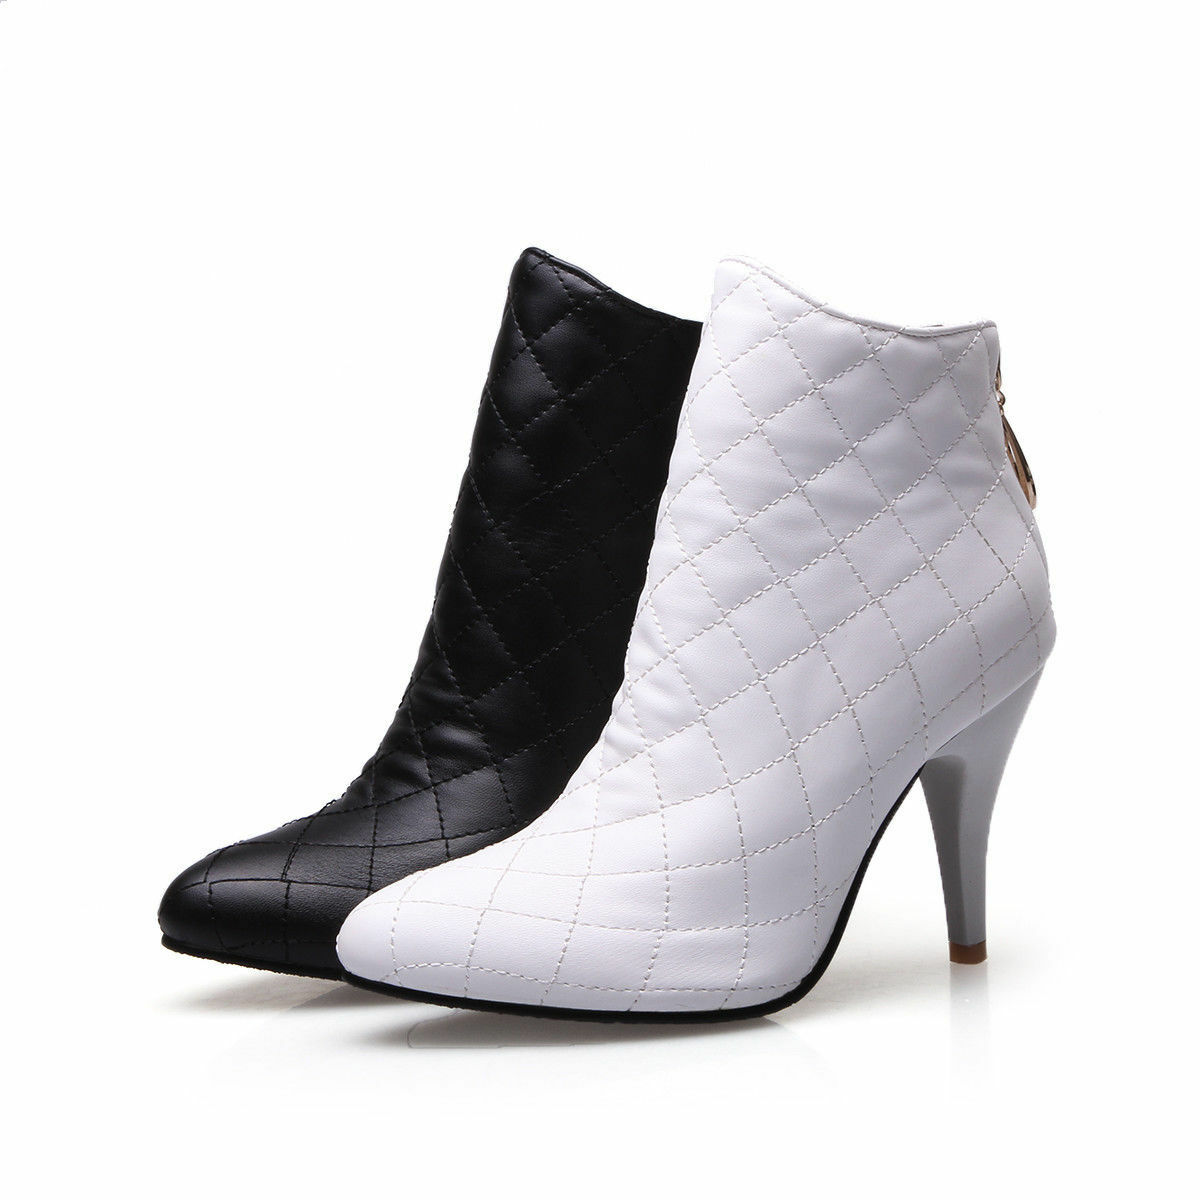 Women's High Heel Zip Ankle Boots Synthetic Leather Pointed Plus Size shoes O135